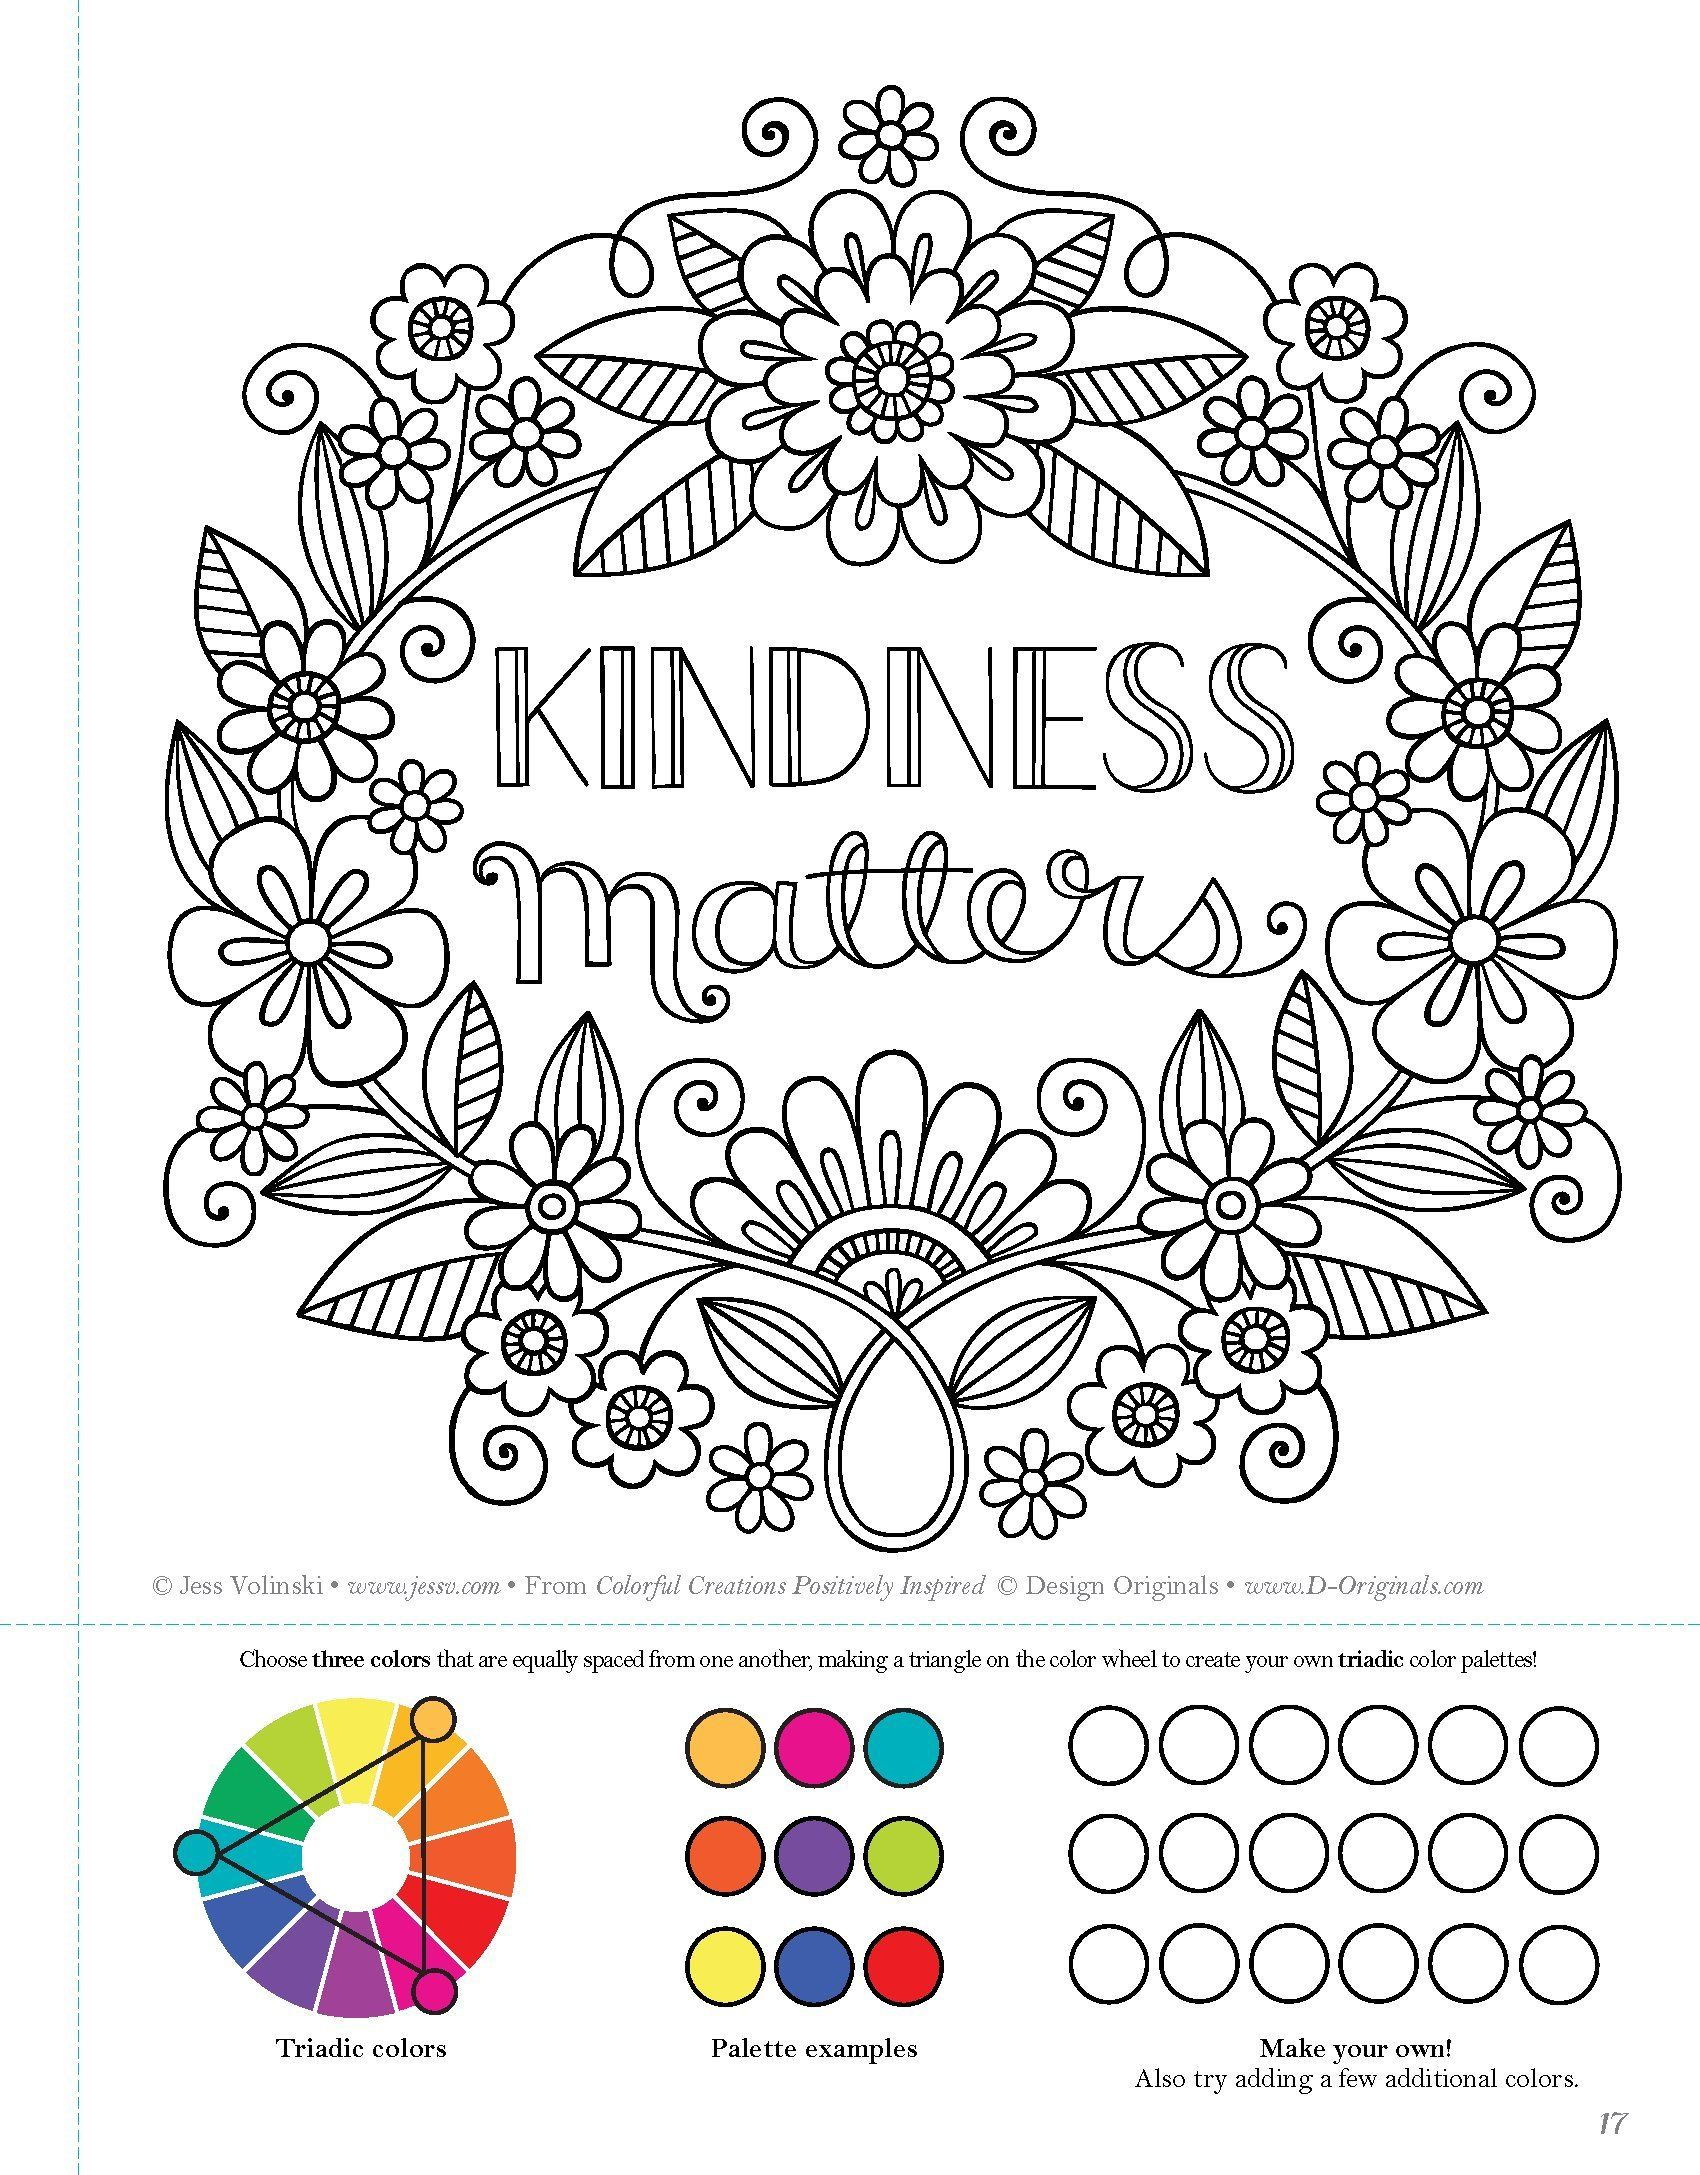 Amazon Com Colorful Creations Positively Inspired Coloring Book Coloring Book Pages Designed To Inspire Coloring Book Pages Coloring Books Color Drawing Art